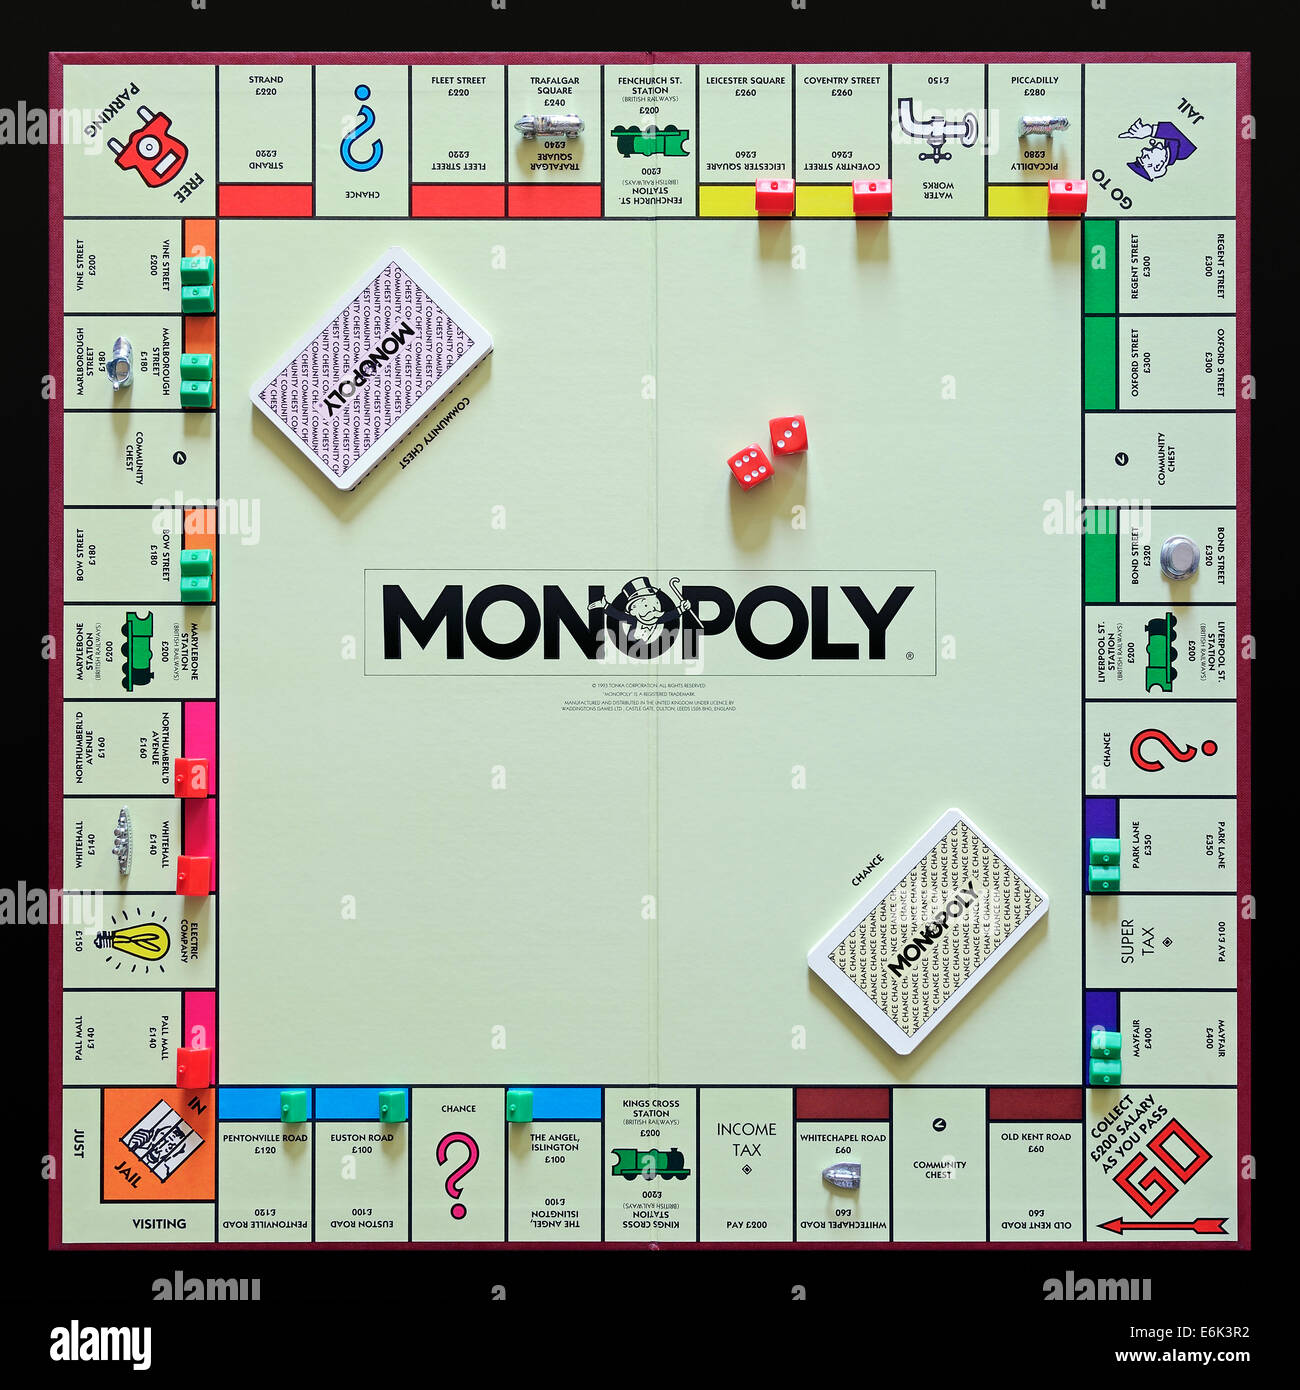 Monopoly, the original UK version of the popular property trading board game. - Stock Image